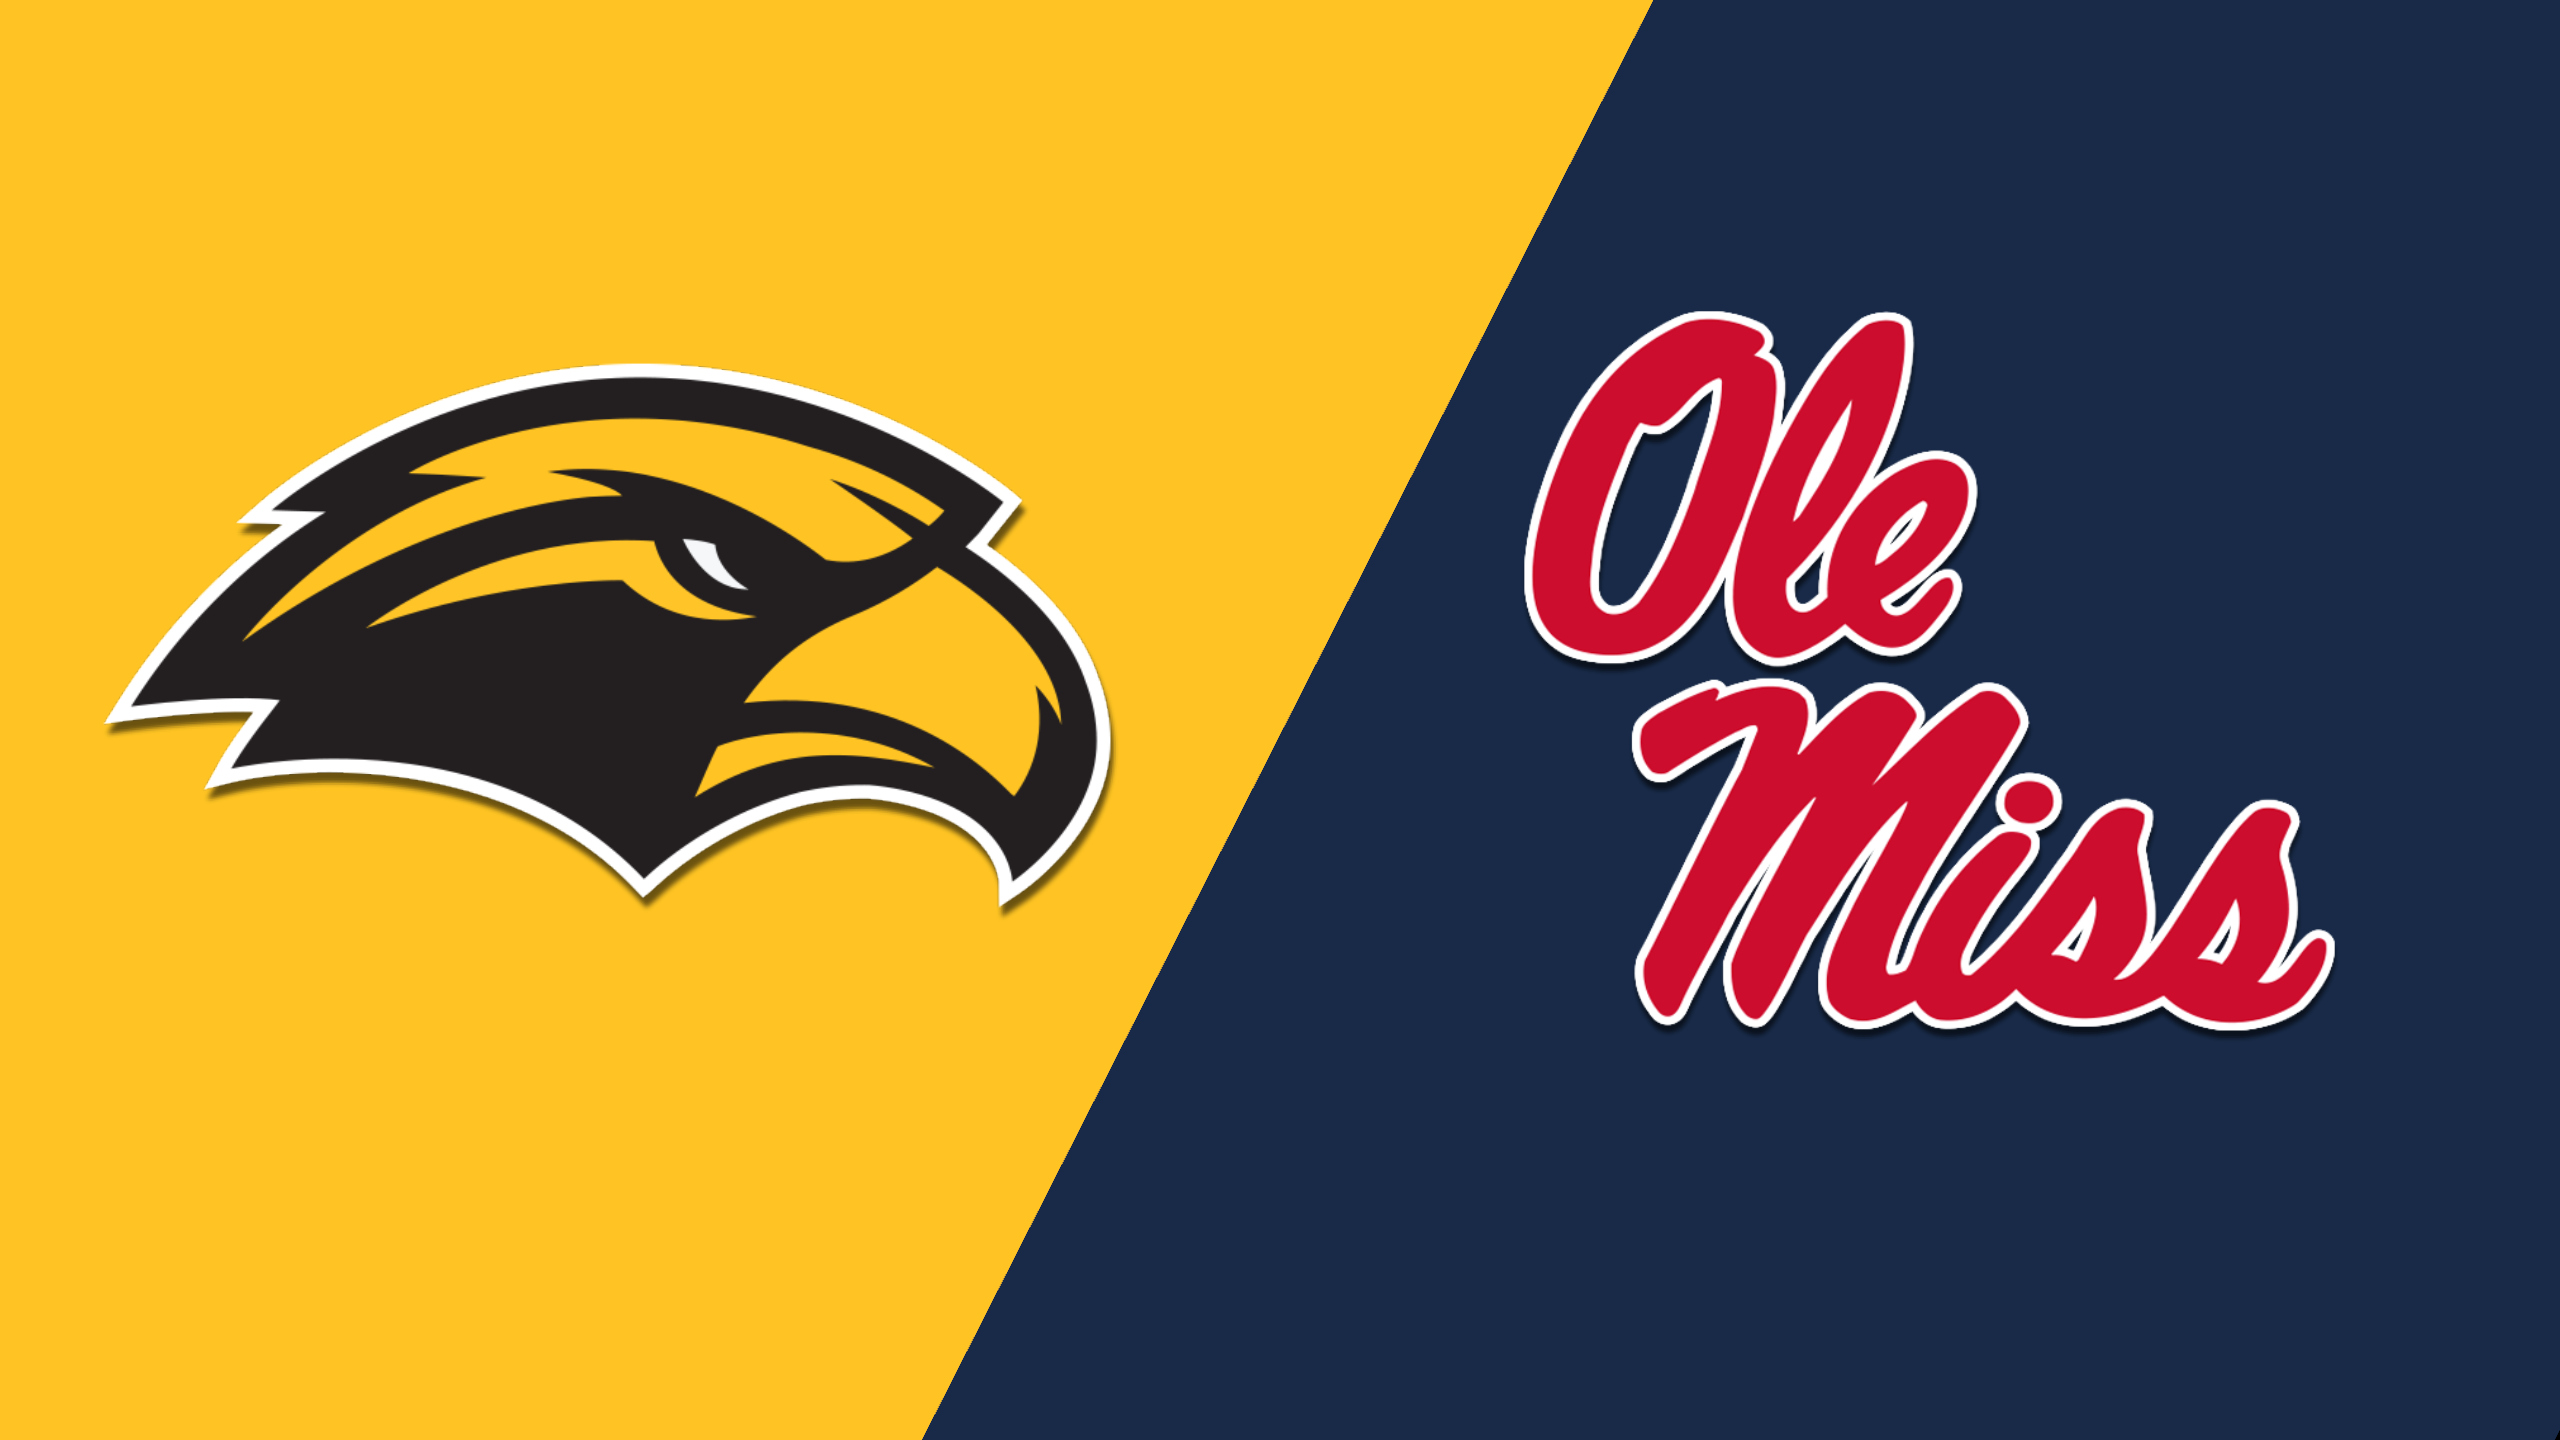 Southern Miss vs. Ole Miss (Softball)